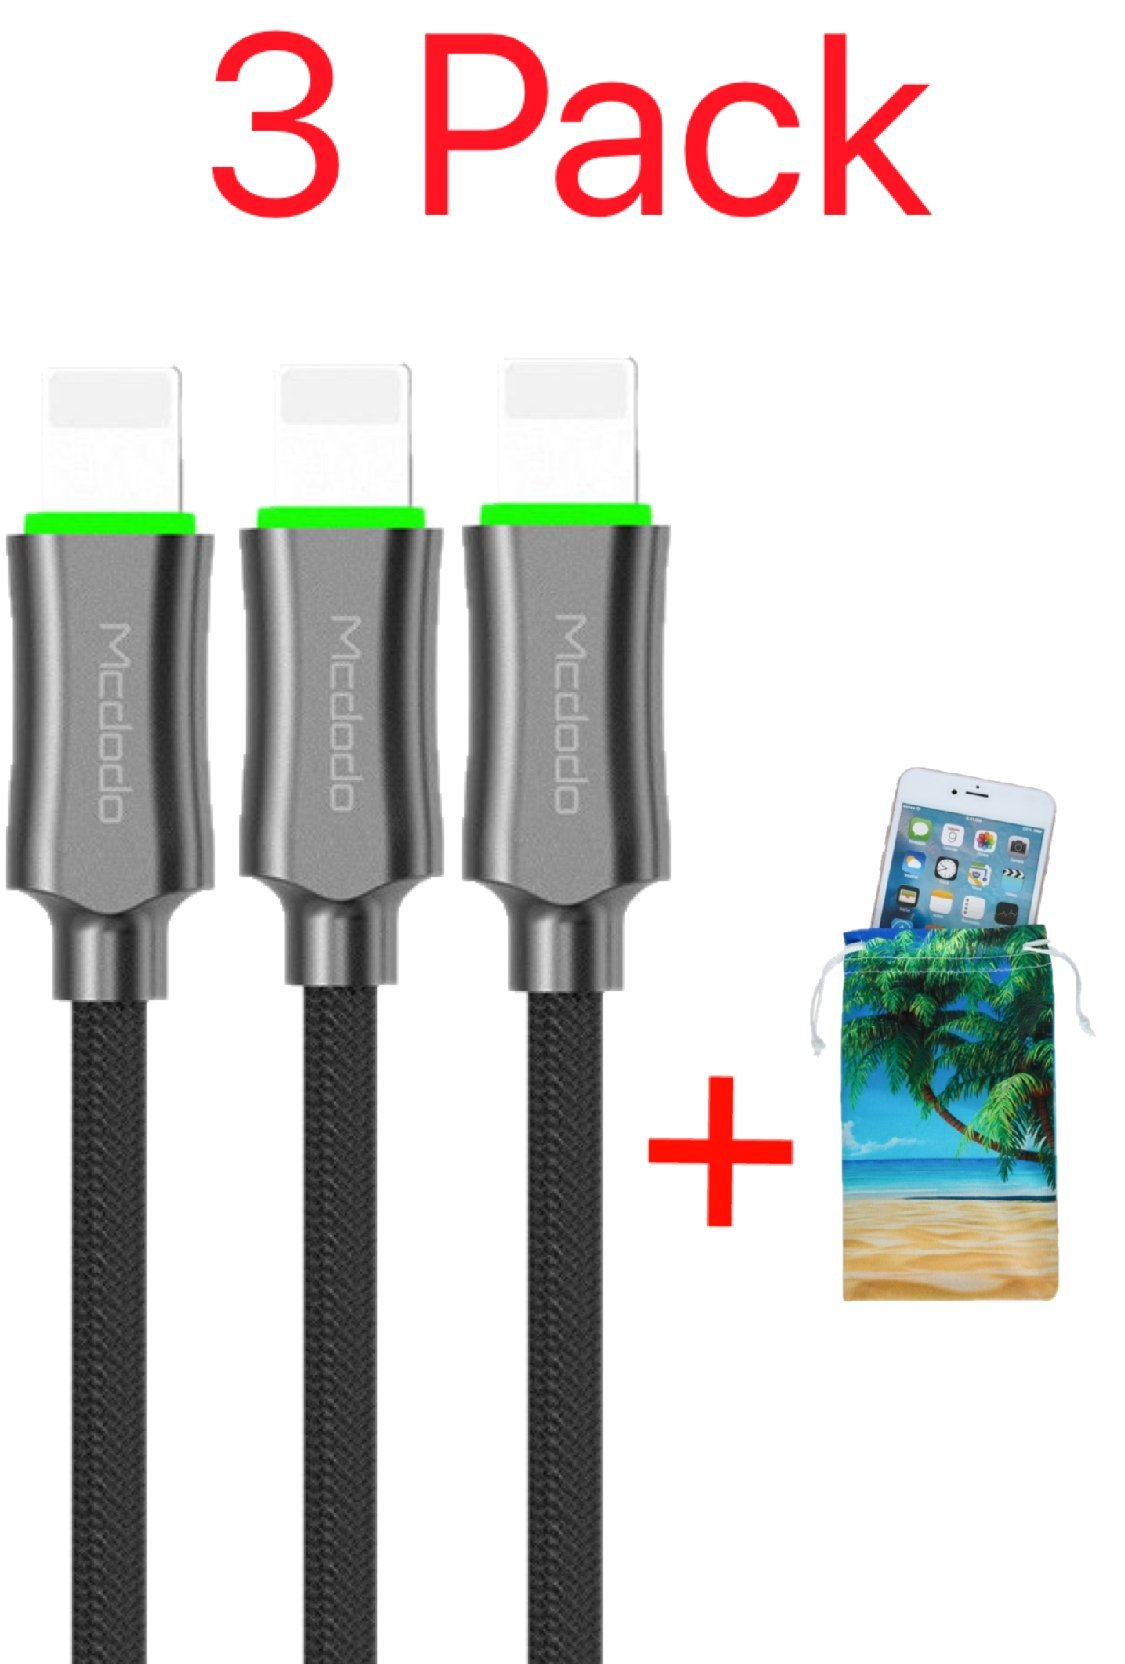 (3 Pack + iPhone Bag) Power Off Smart LED Auto Disconnect Lightning Nylon Braided Sync Charge USB Data 6FT/1.8M Cable For iPhone, iPod and iPad By Mcdodo (6FT Black) by MCDODO